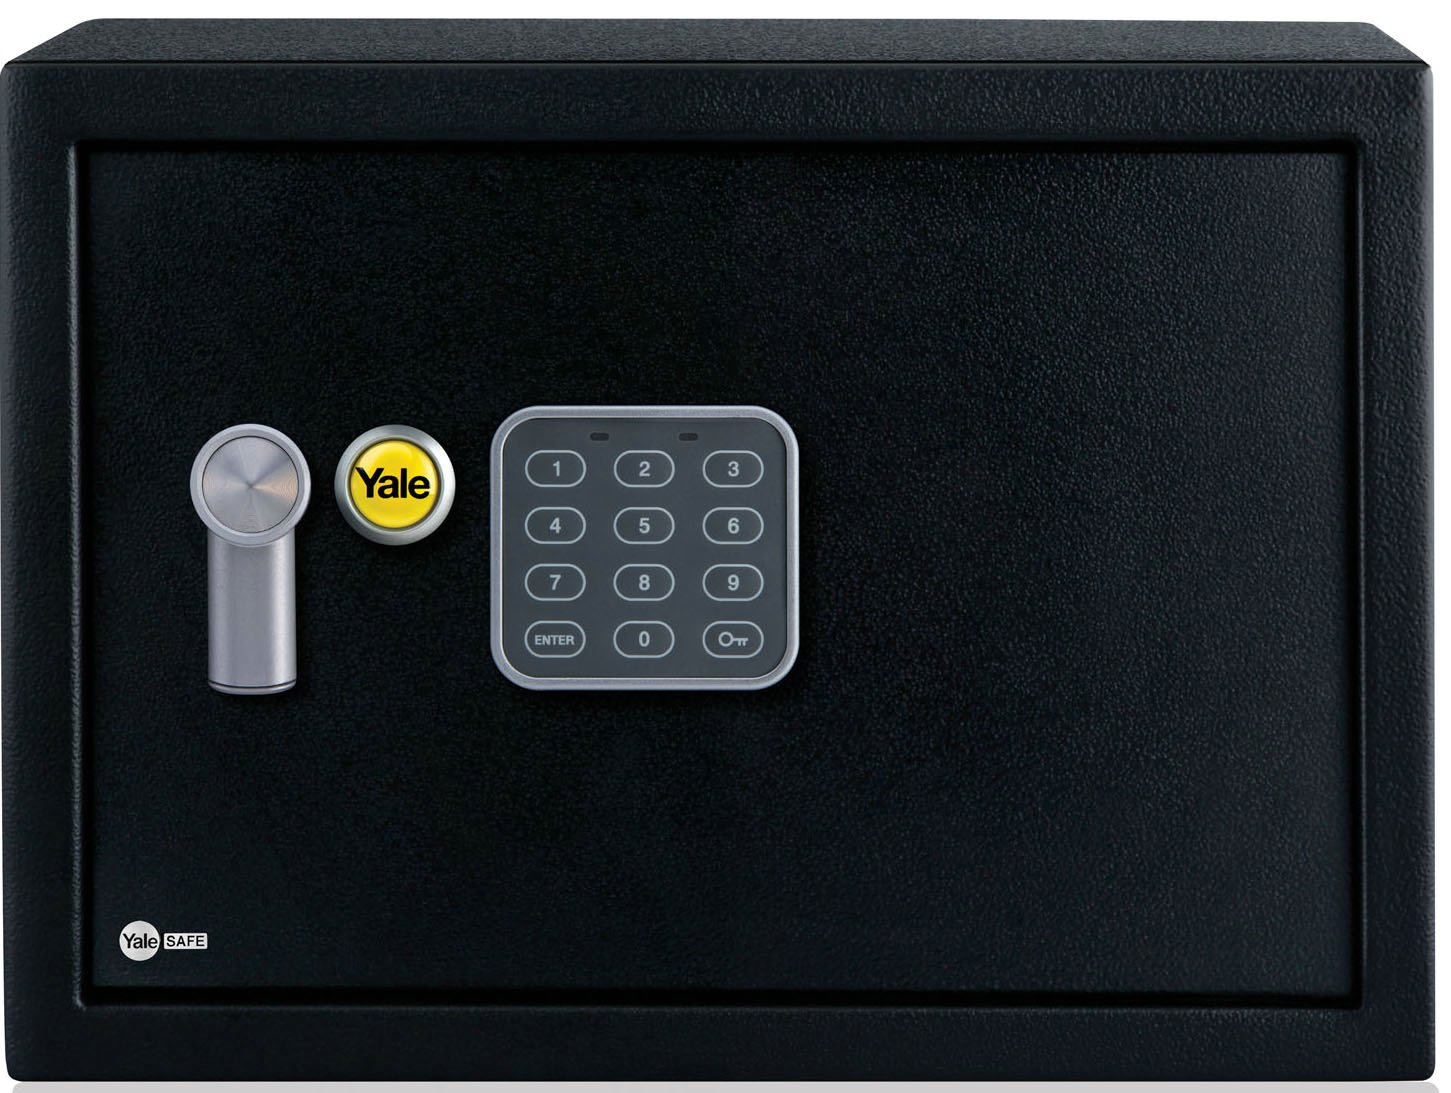 Value safes